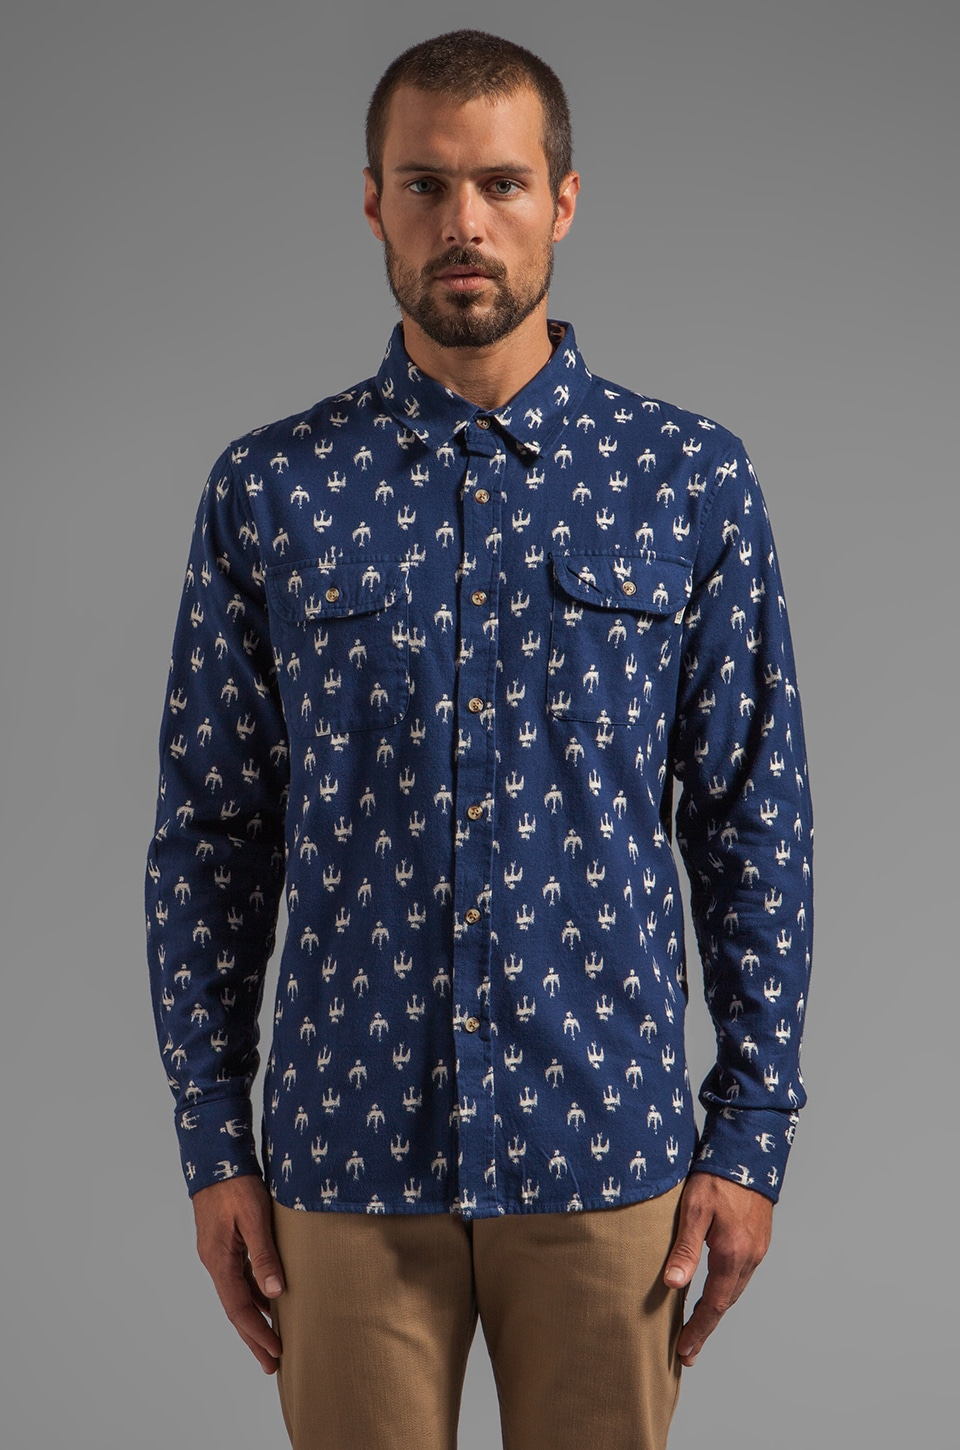 Obey Early Bird Flannel Button Down with Bird Print in Indigo